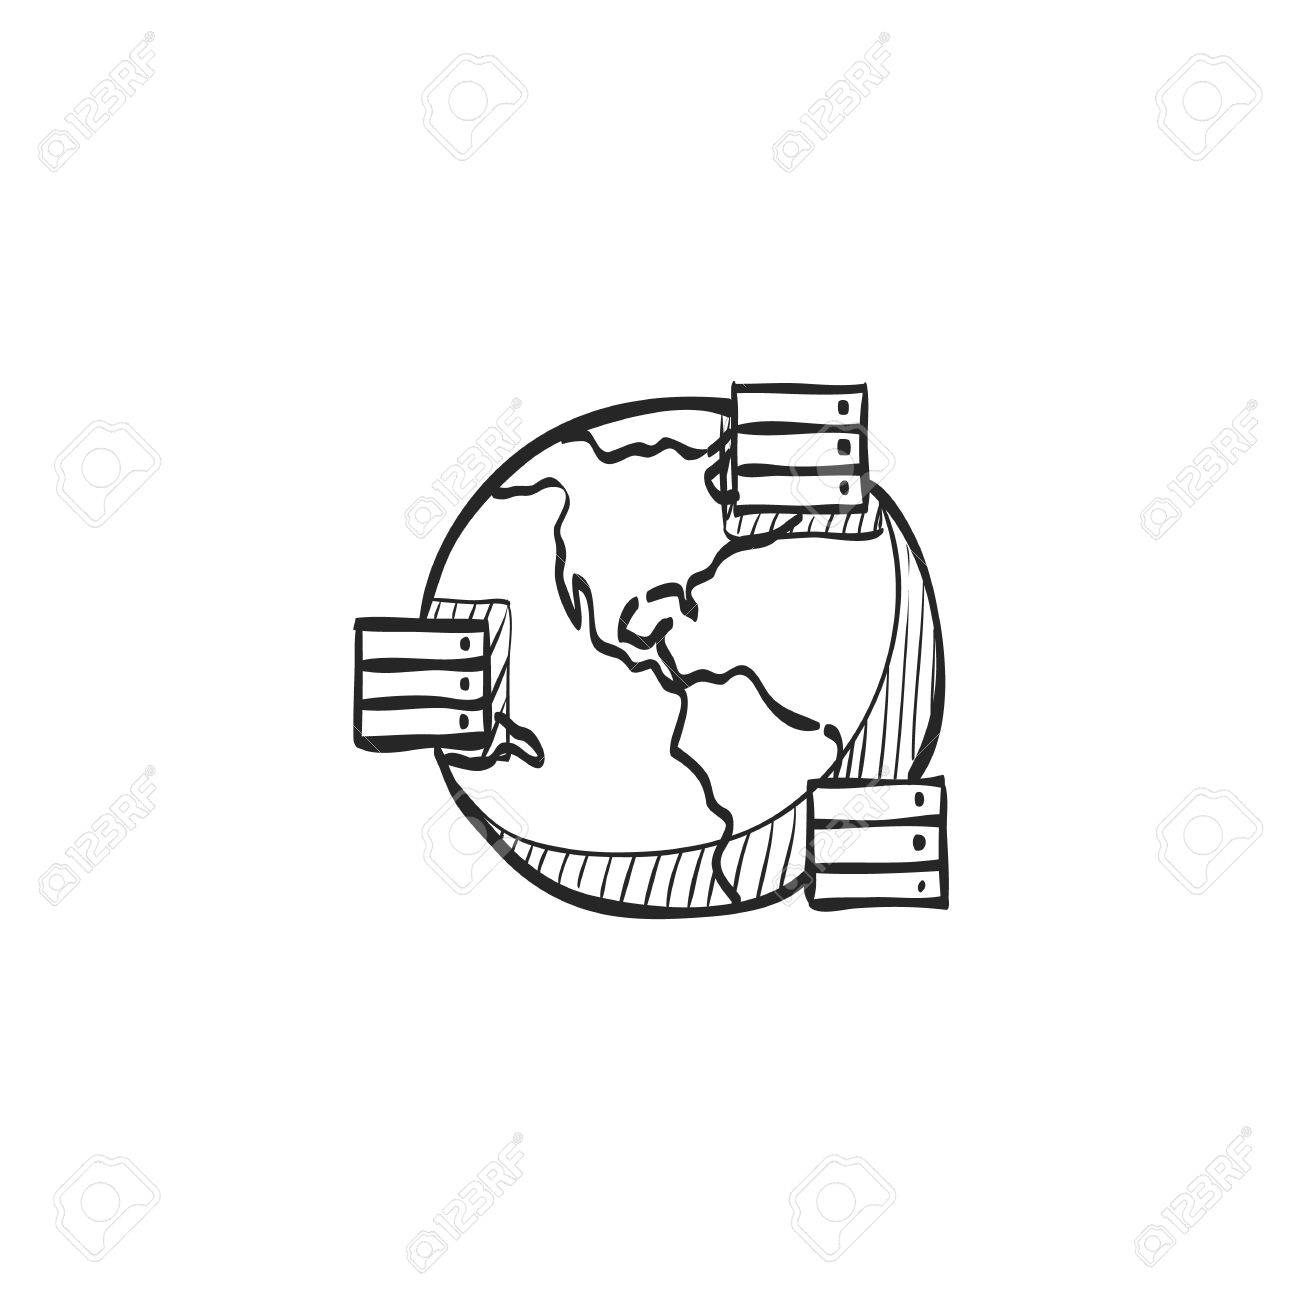 1300x1300 Server Icon In Doodle Sketch Lines. Mirror, Multiple Royalty Free